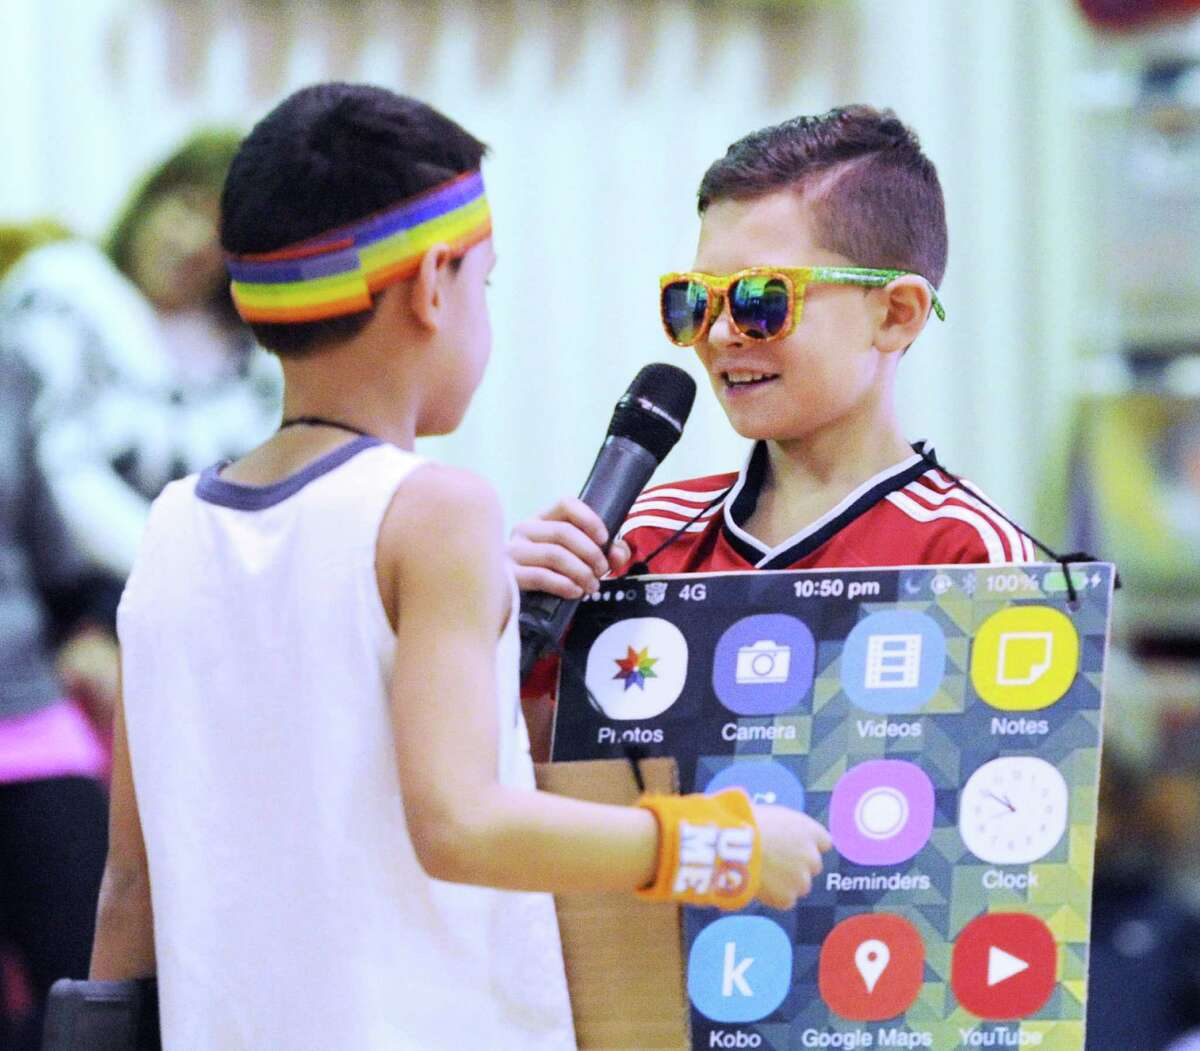 New Lebanon School third-graders Jayden Aurioles, 9, left, and Nicolas Fajardo, also 9, both dressed as digital devices, speak about what they learned recently during Friday's celebratory performance by the school's third-grade to showcase the district's digital learning program. The event was in the gymnasium at the school in the Byram section of Greenwich.